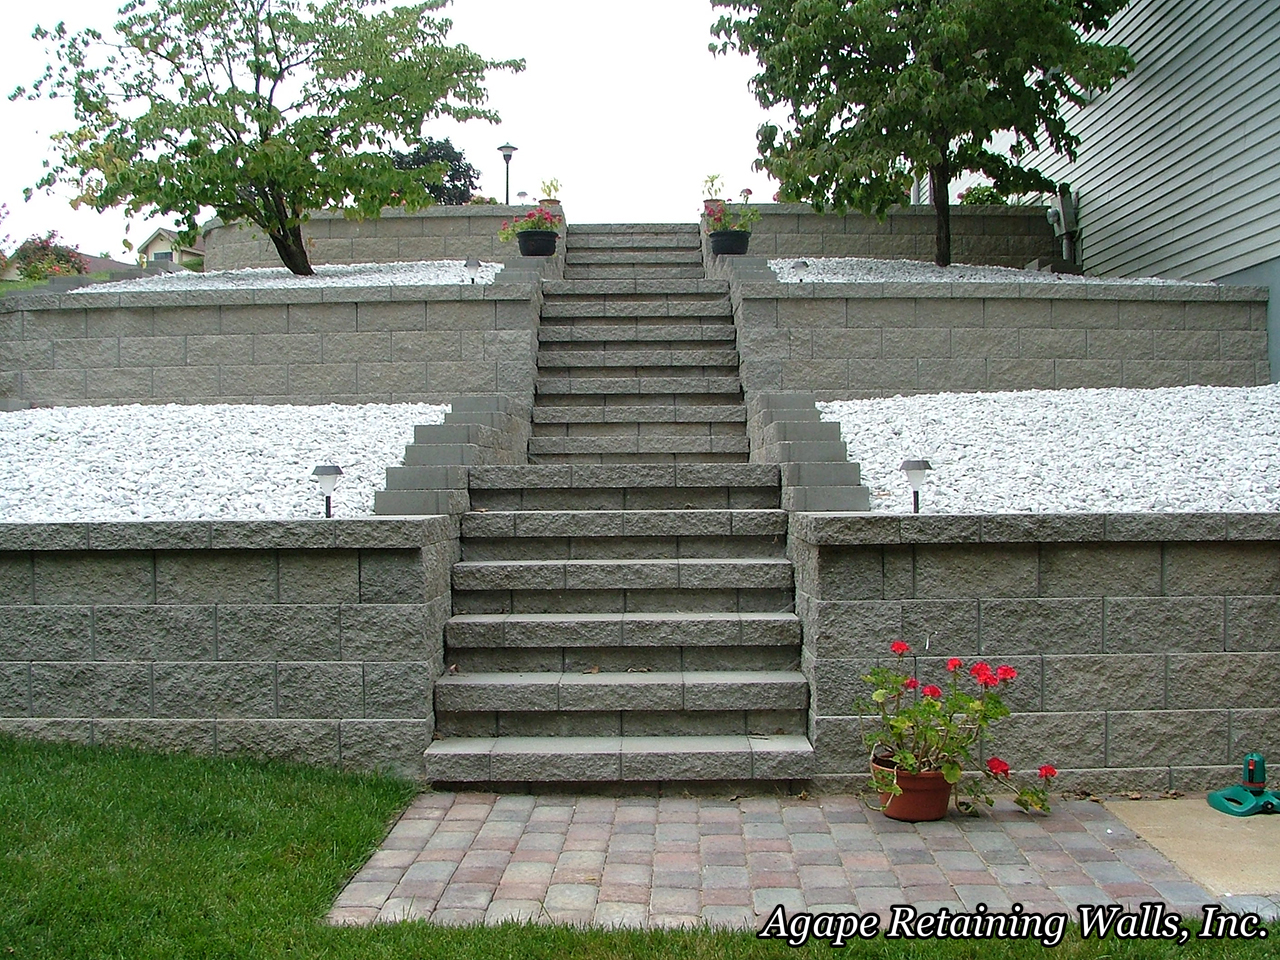 Agape retaining walls inc terrace photo album 2 for Terrace stairs